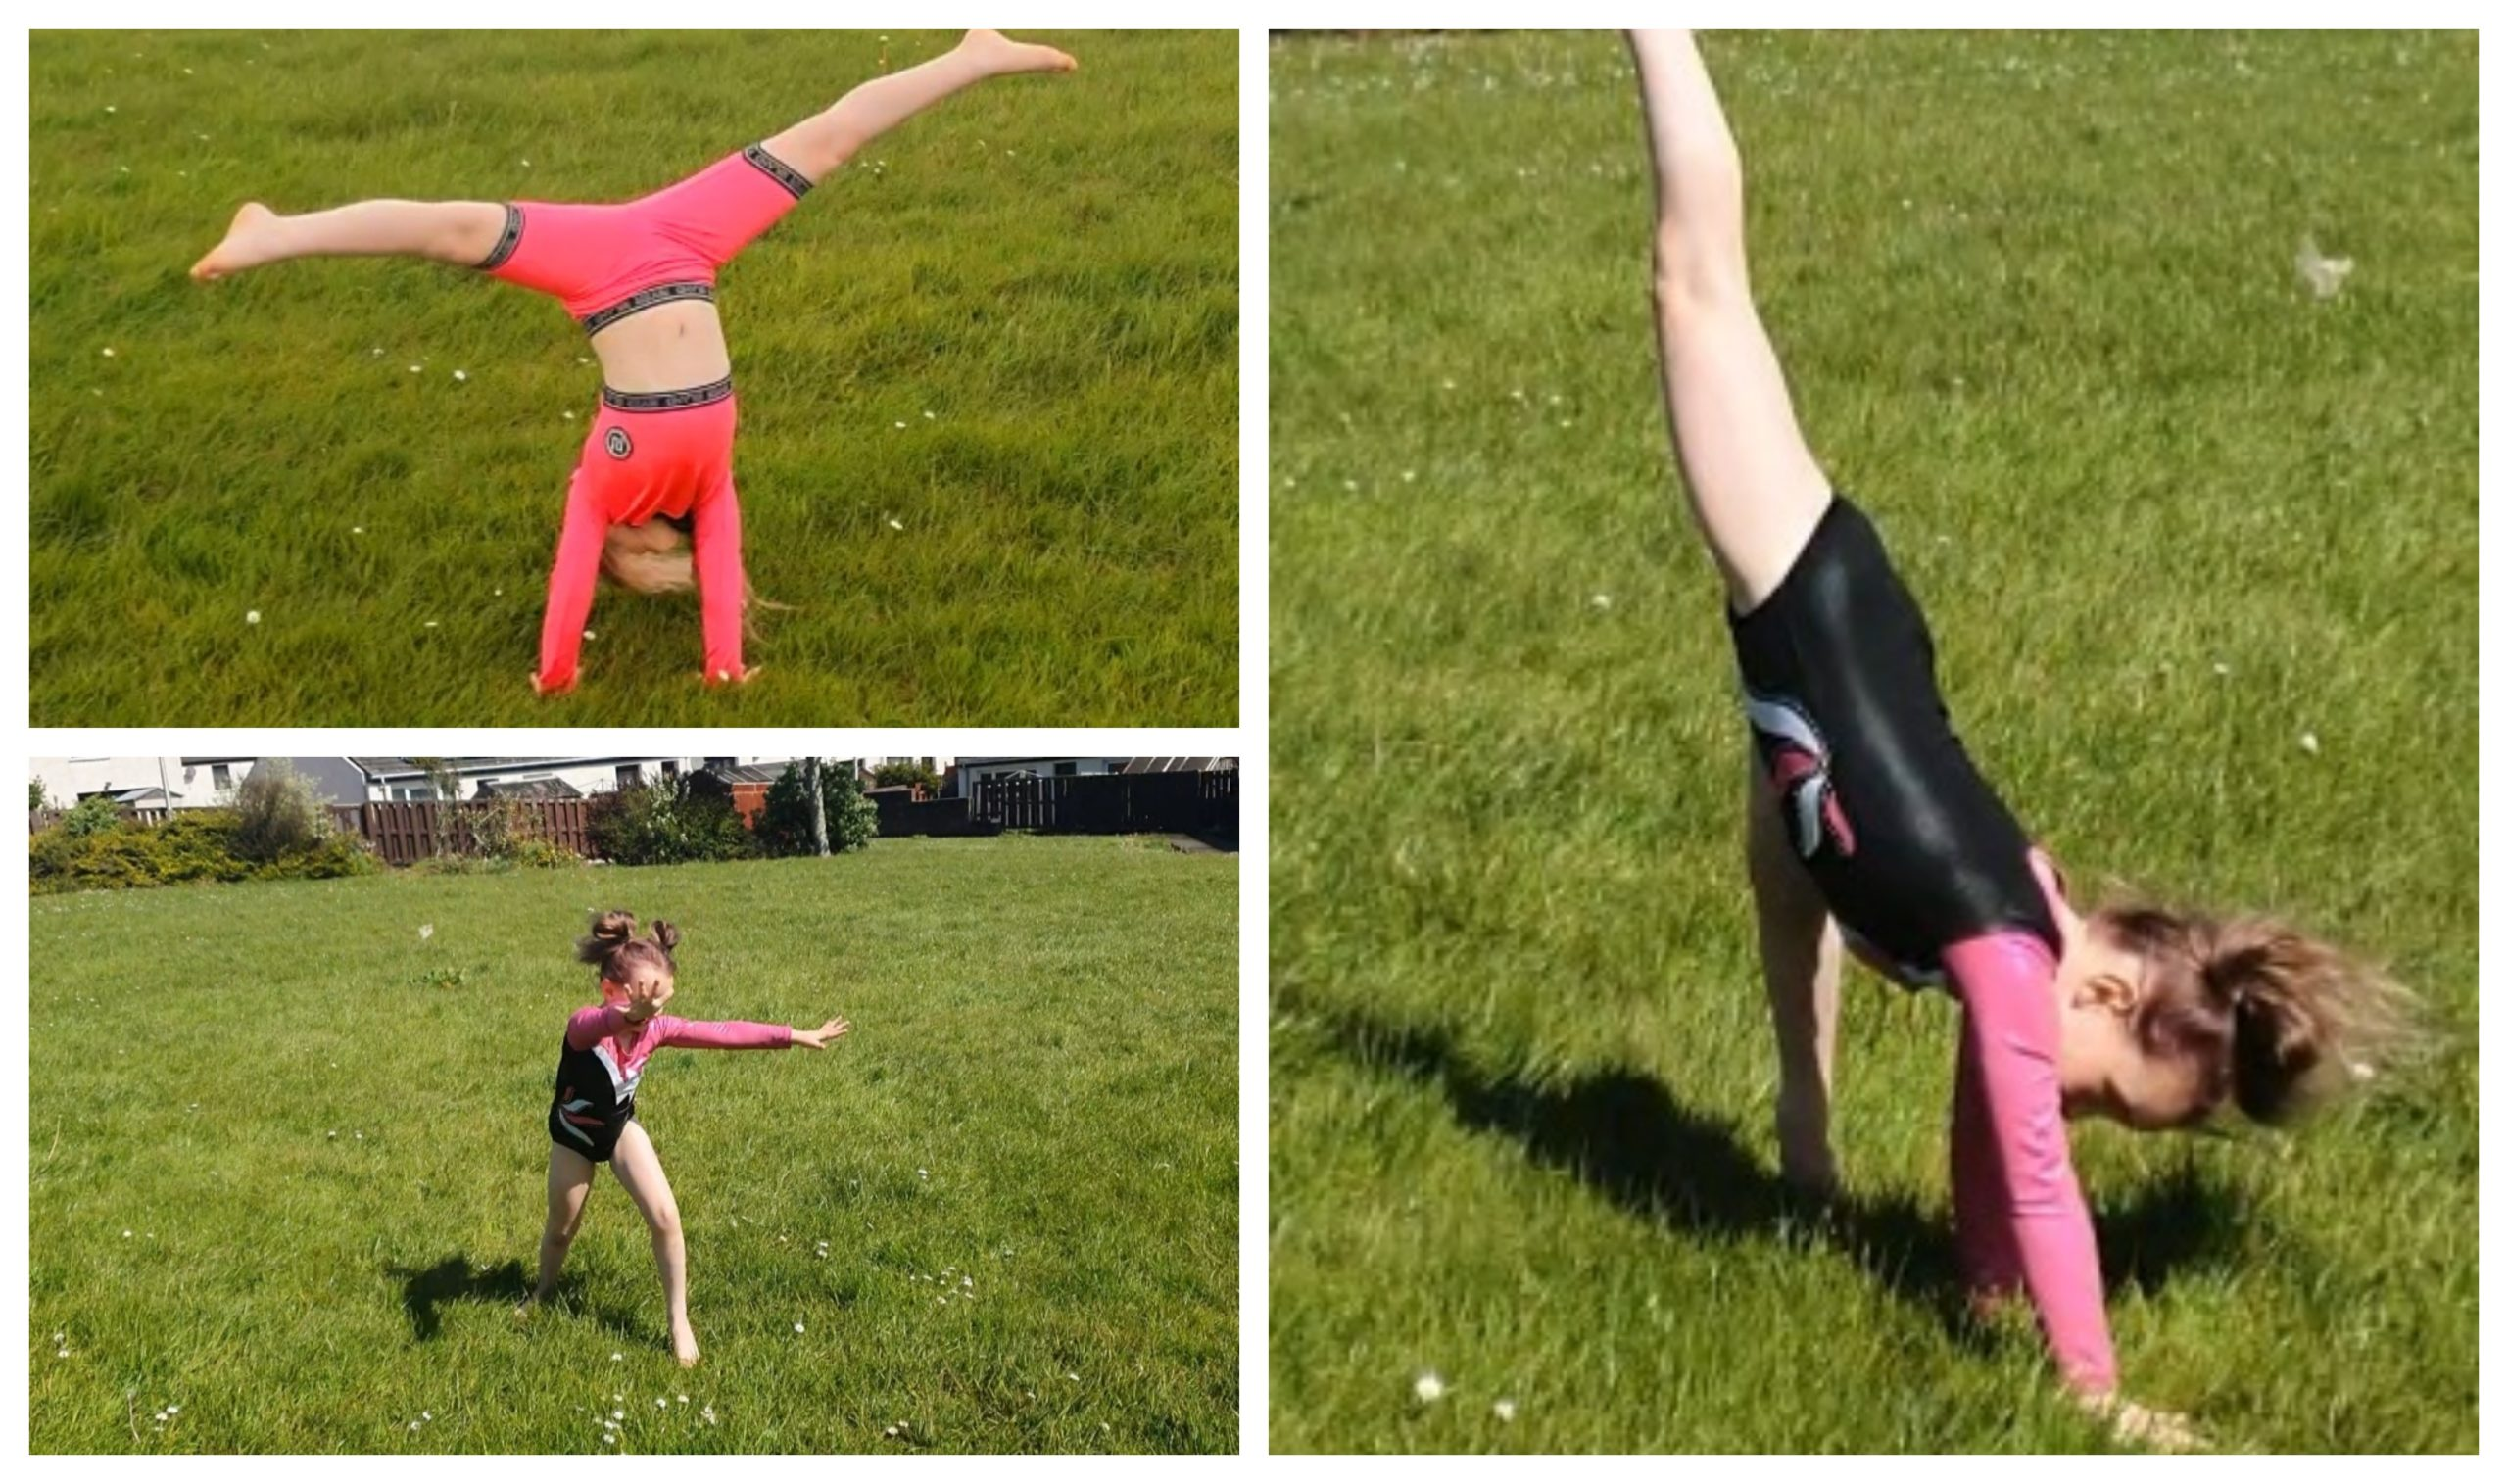 Aimée Wilson plans to do 700 cartwheels to shop her support for the NHS.